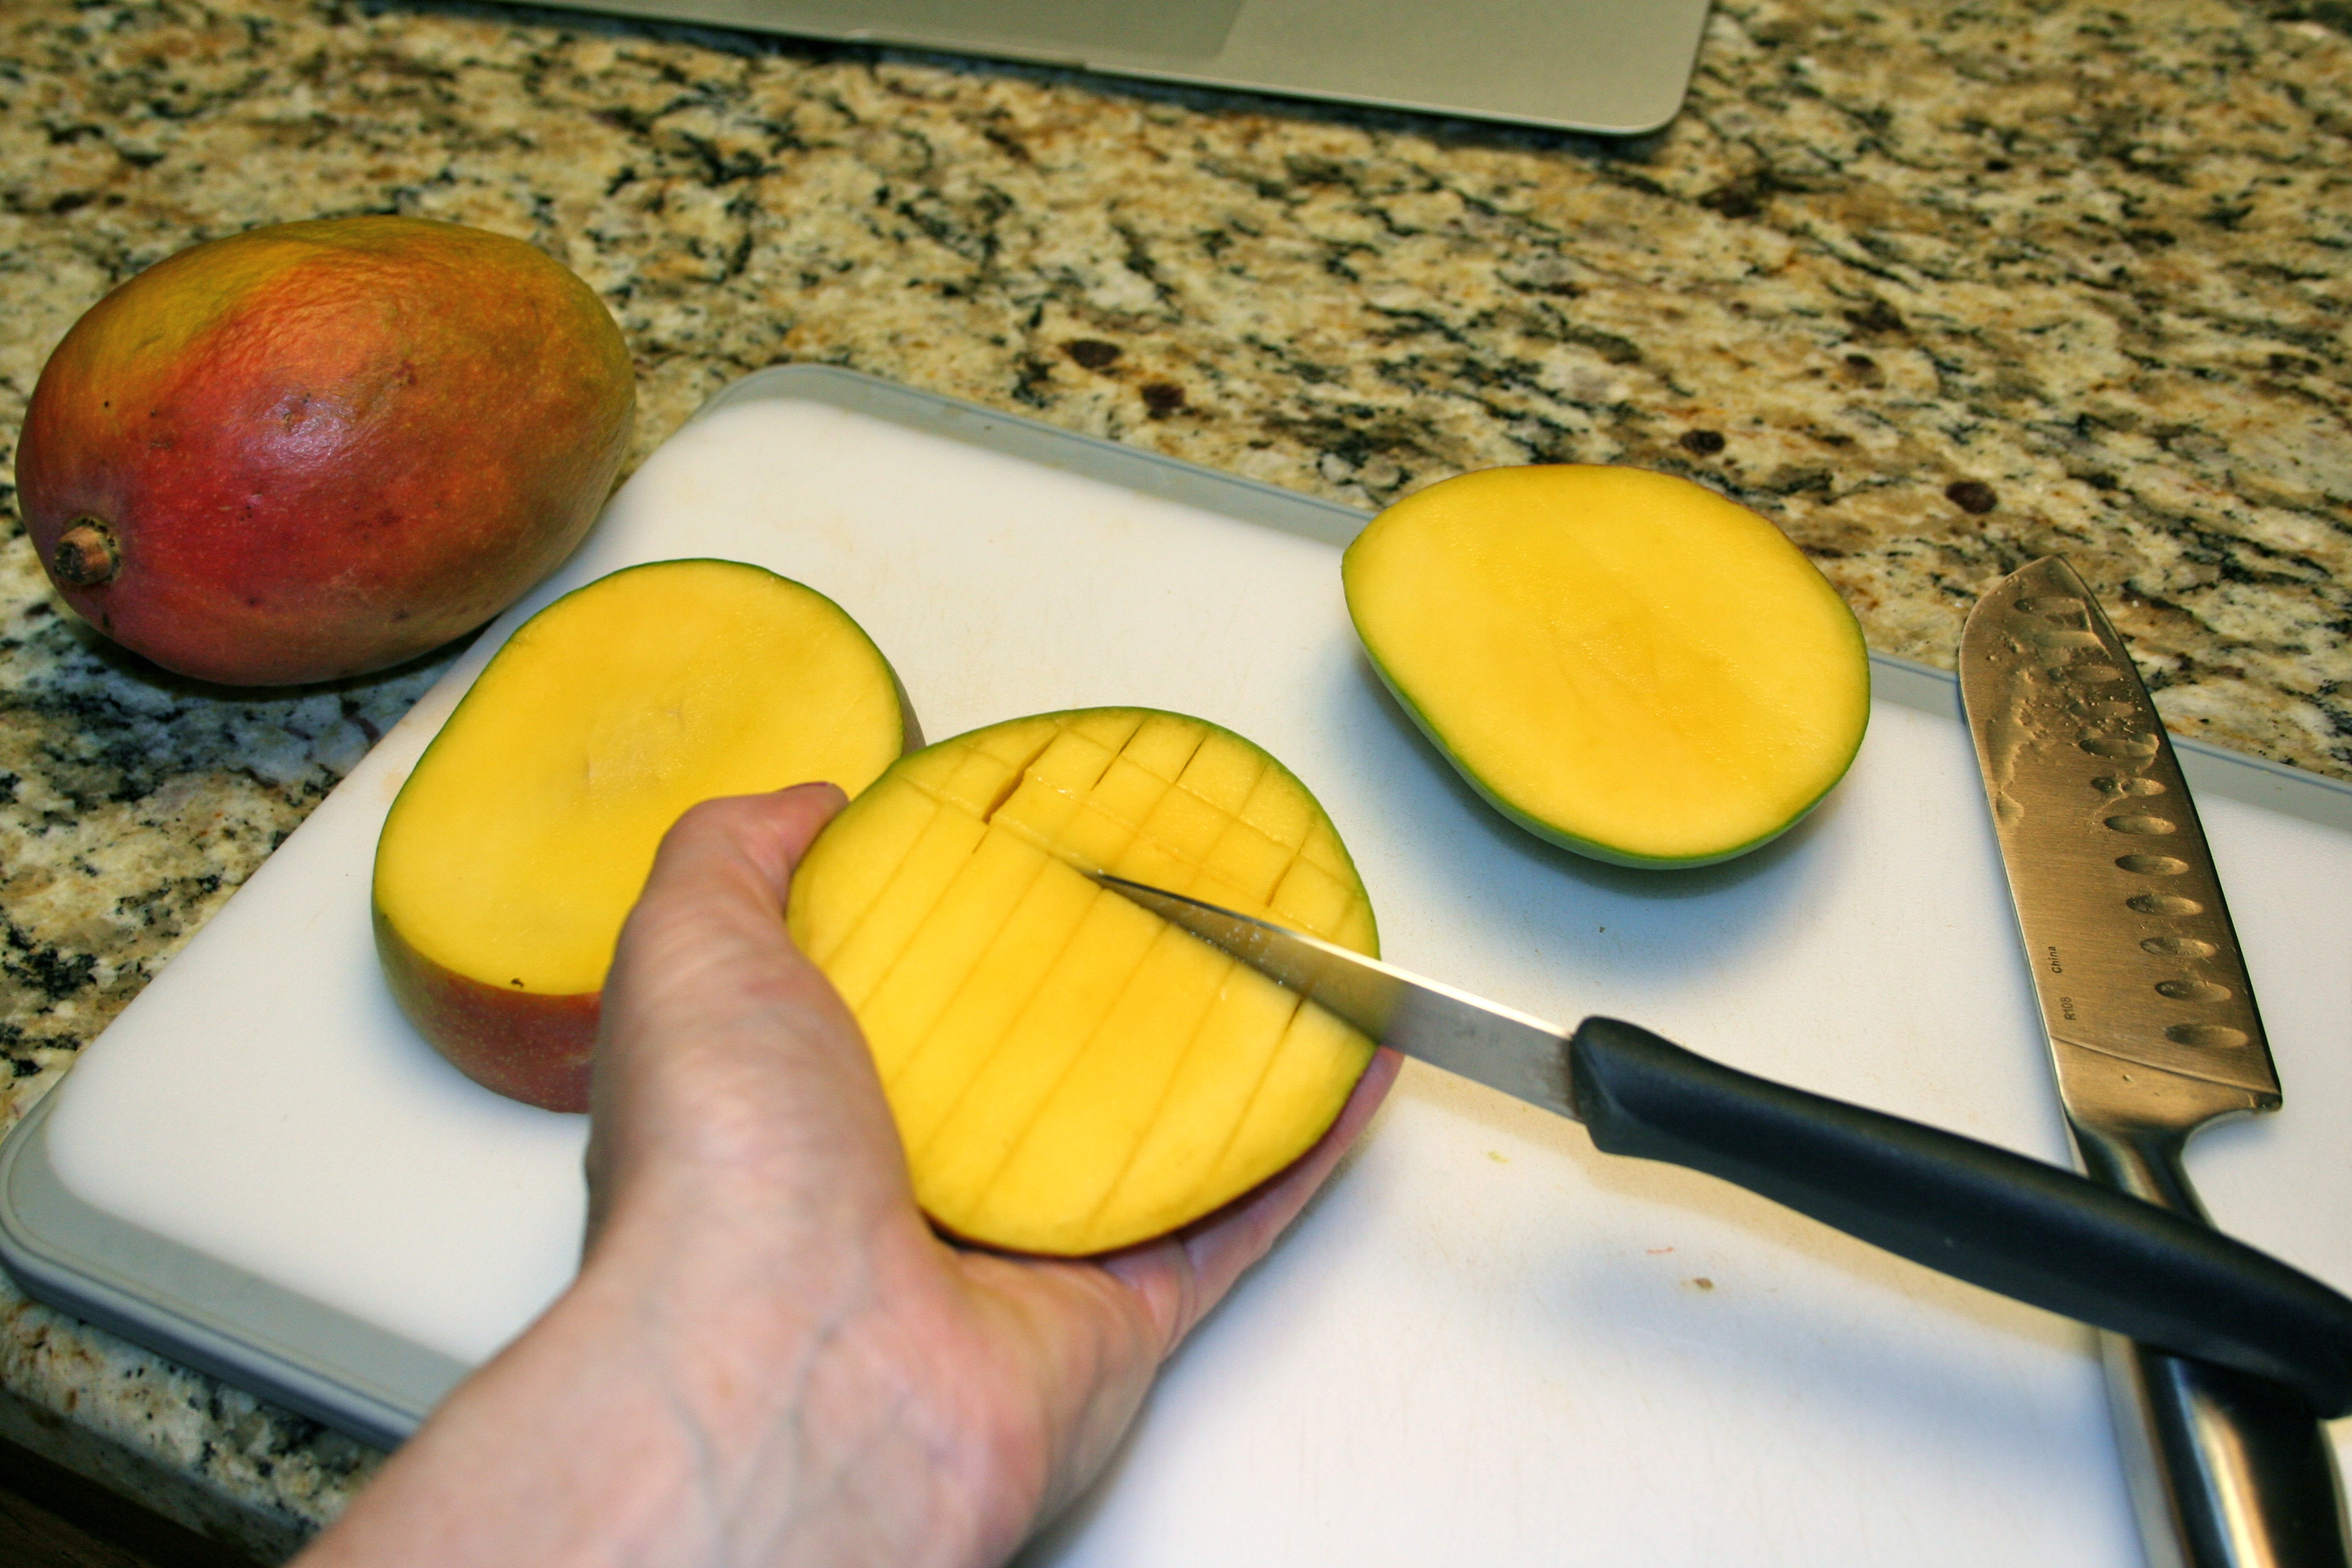 Cut Your Mango By First Slicing Off One Side And Then The Other As Close To